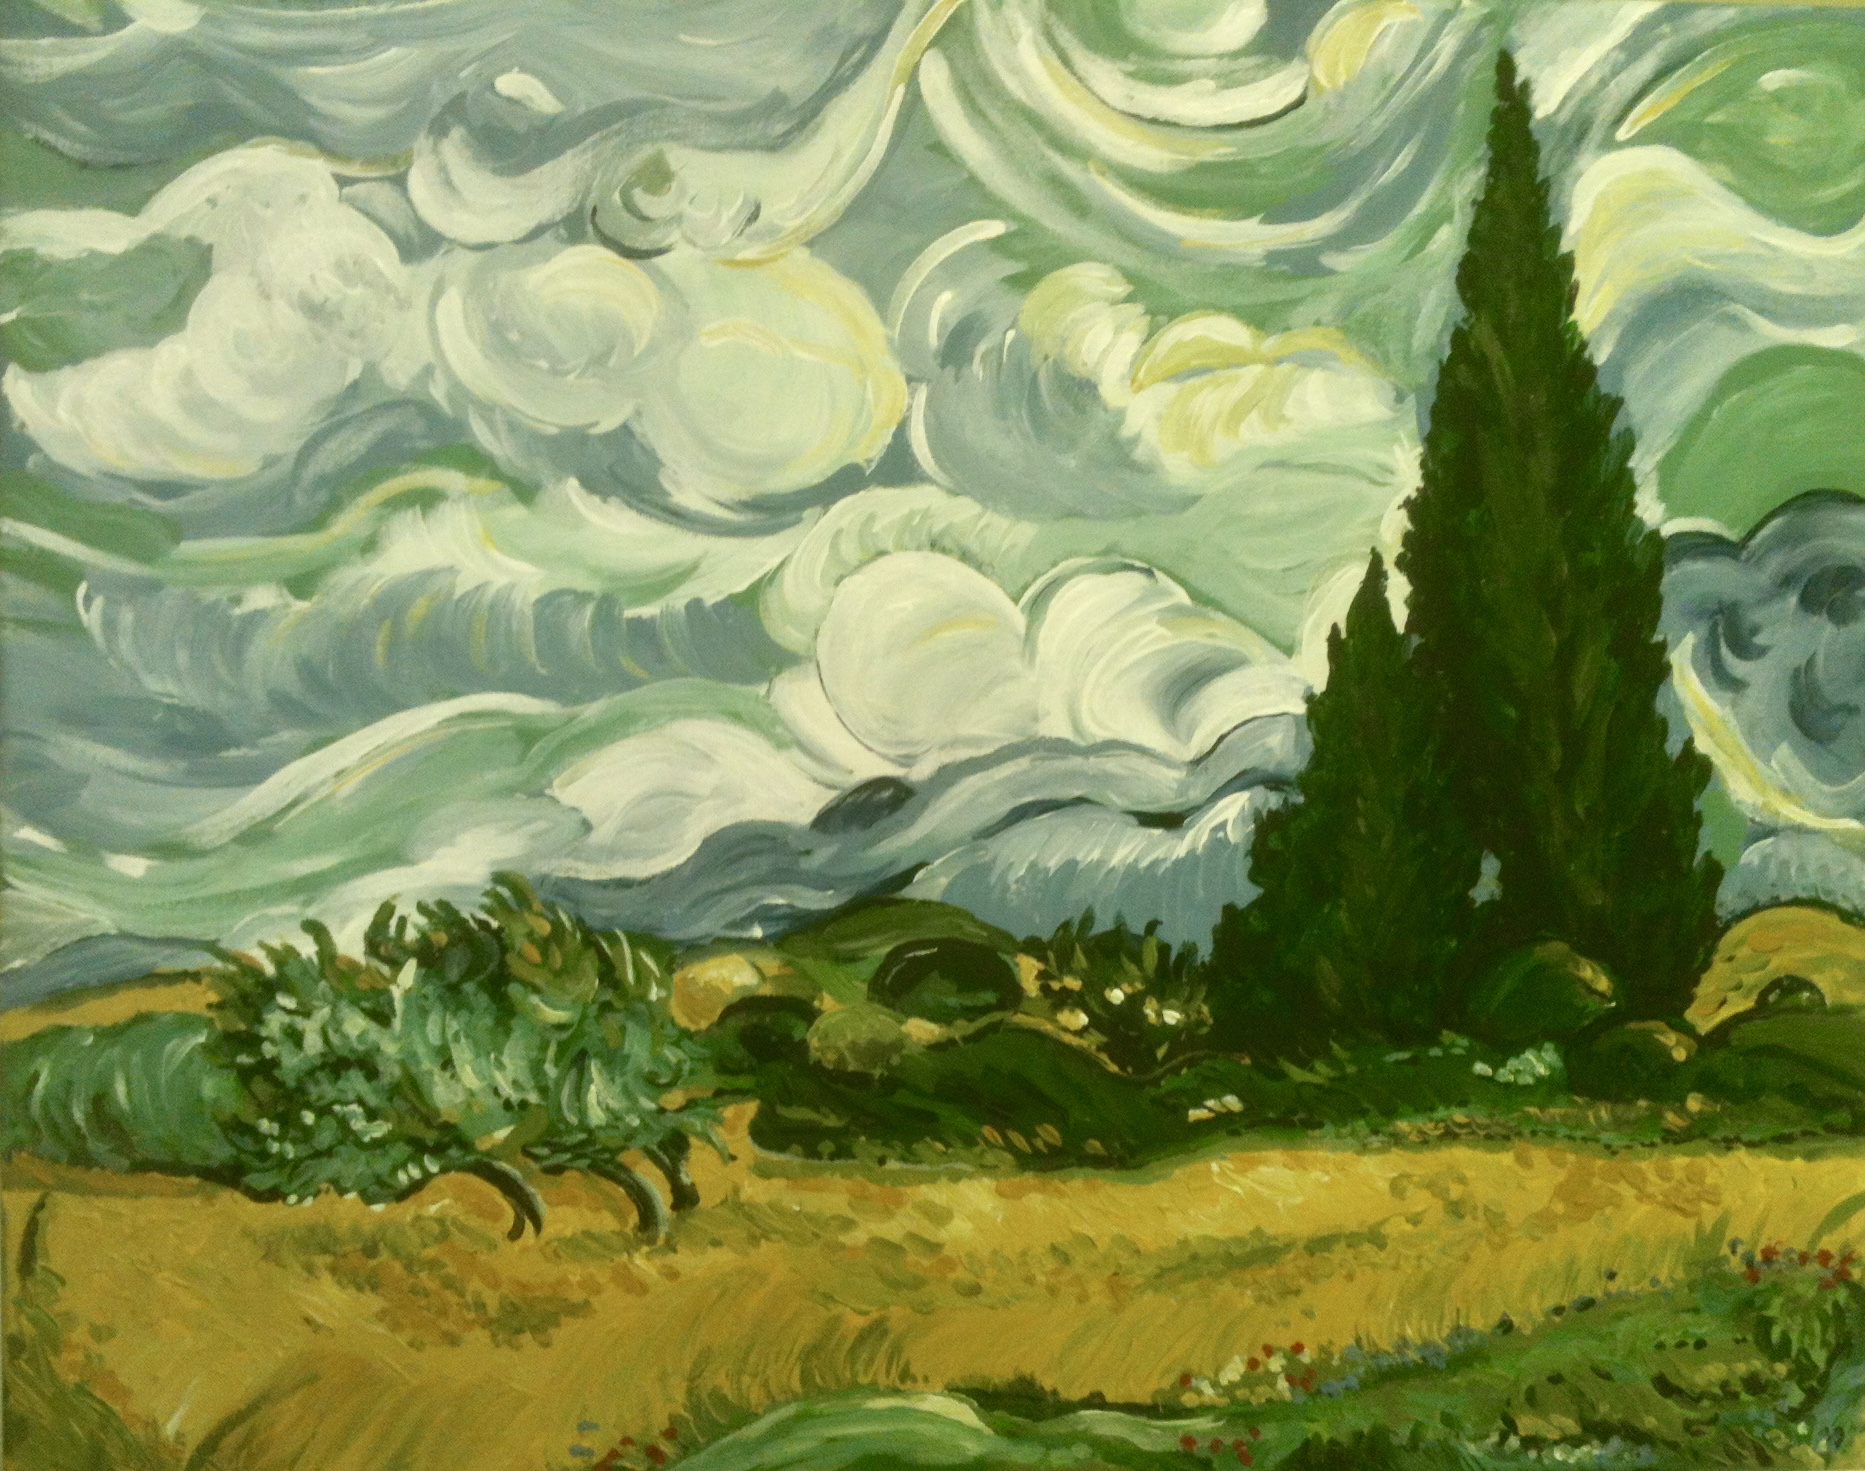 Painting In The Style Of A Master Van Gogh Textural Landscapes